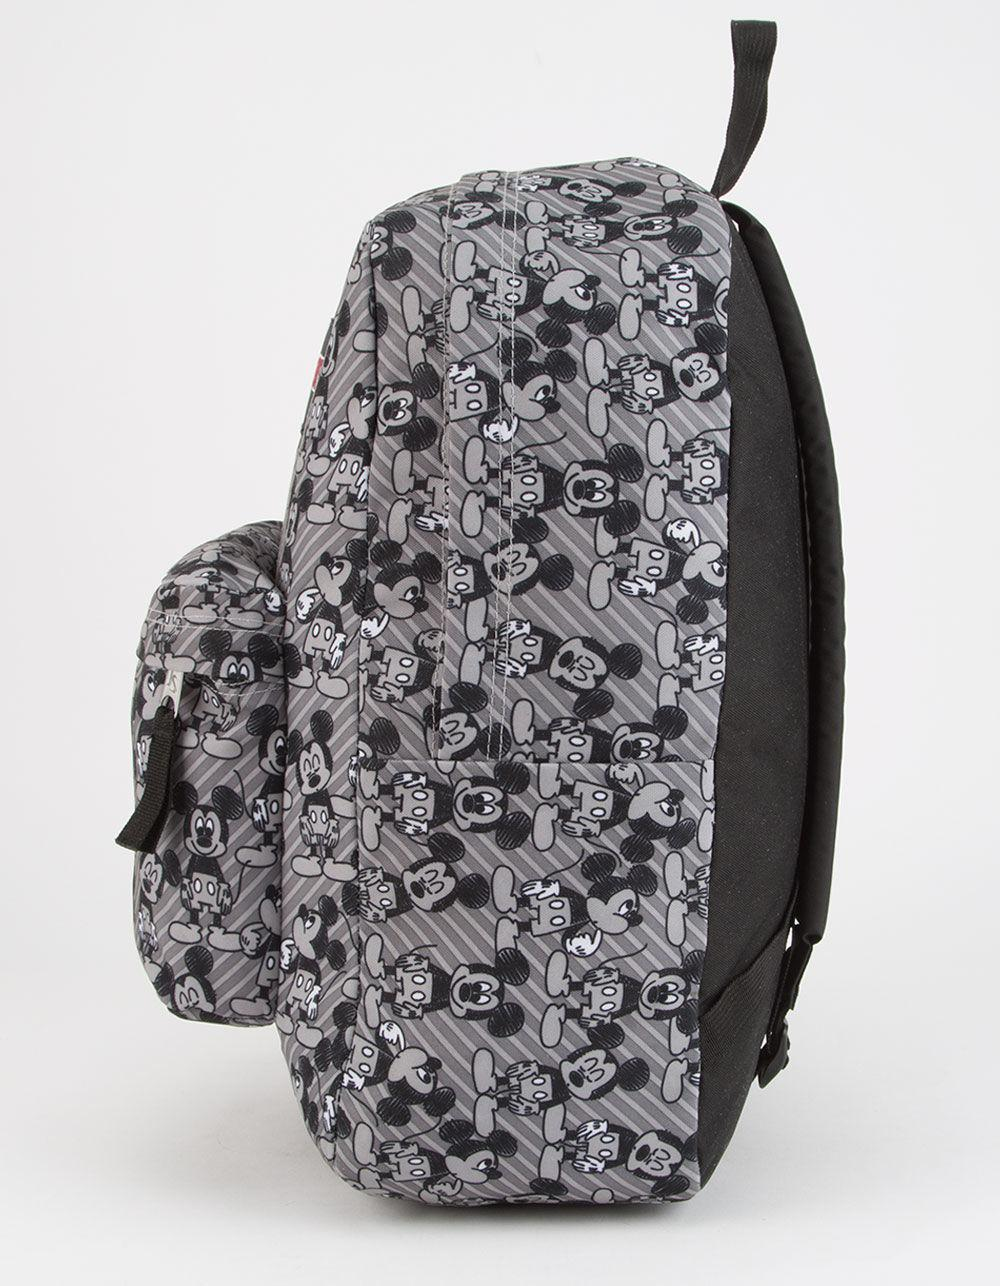 6e7327713db Lyst - Jansport X Disney Grey Rabbit Mickey Superbreak Backpack in Gray